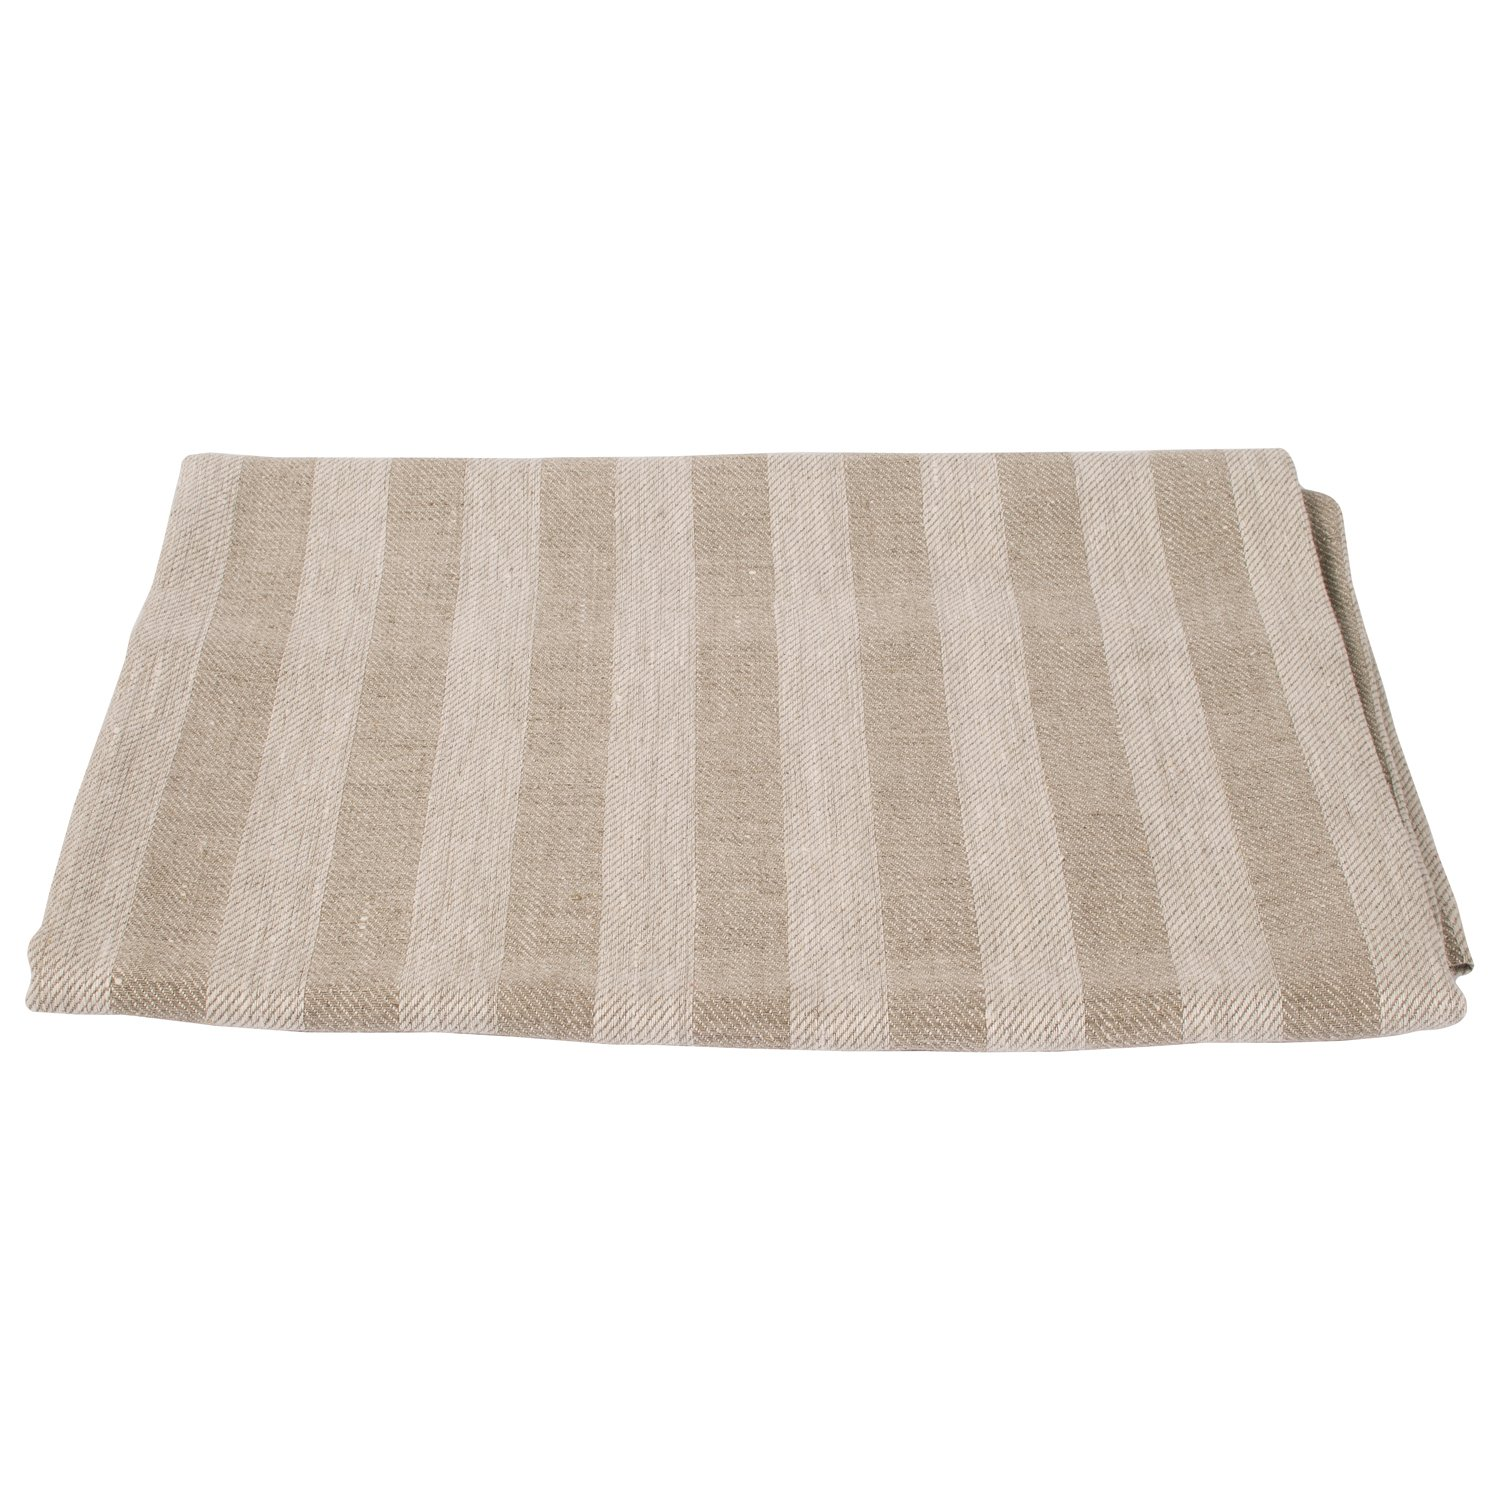 LinenMe Lucas X4 Bath Towels, 40 by 60-Inch, Natural Striped